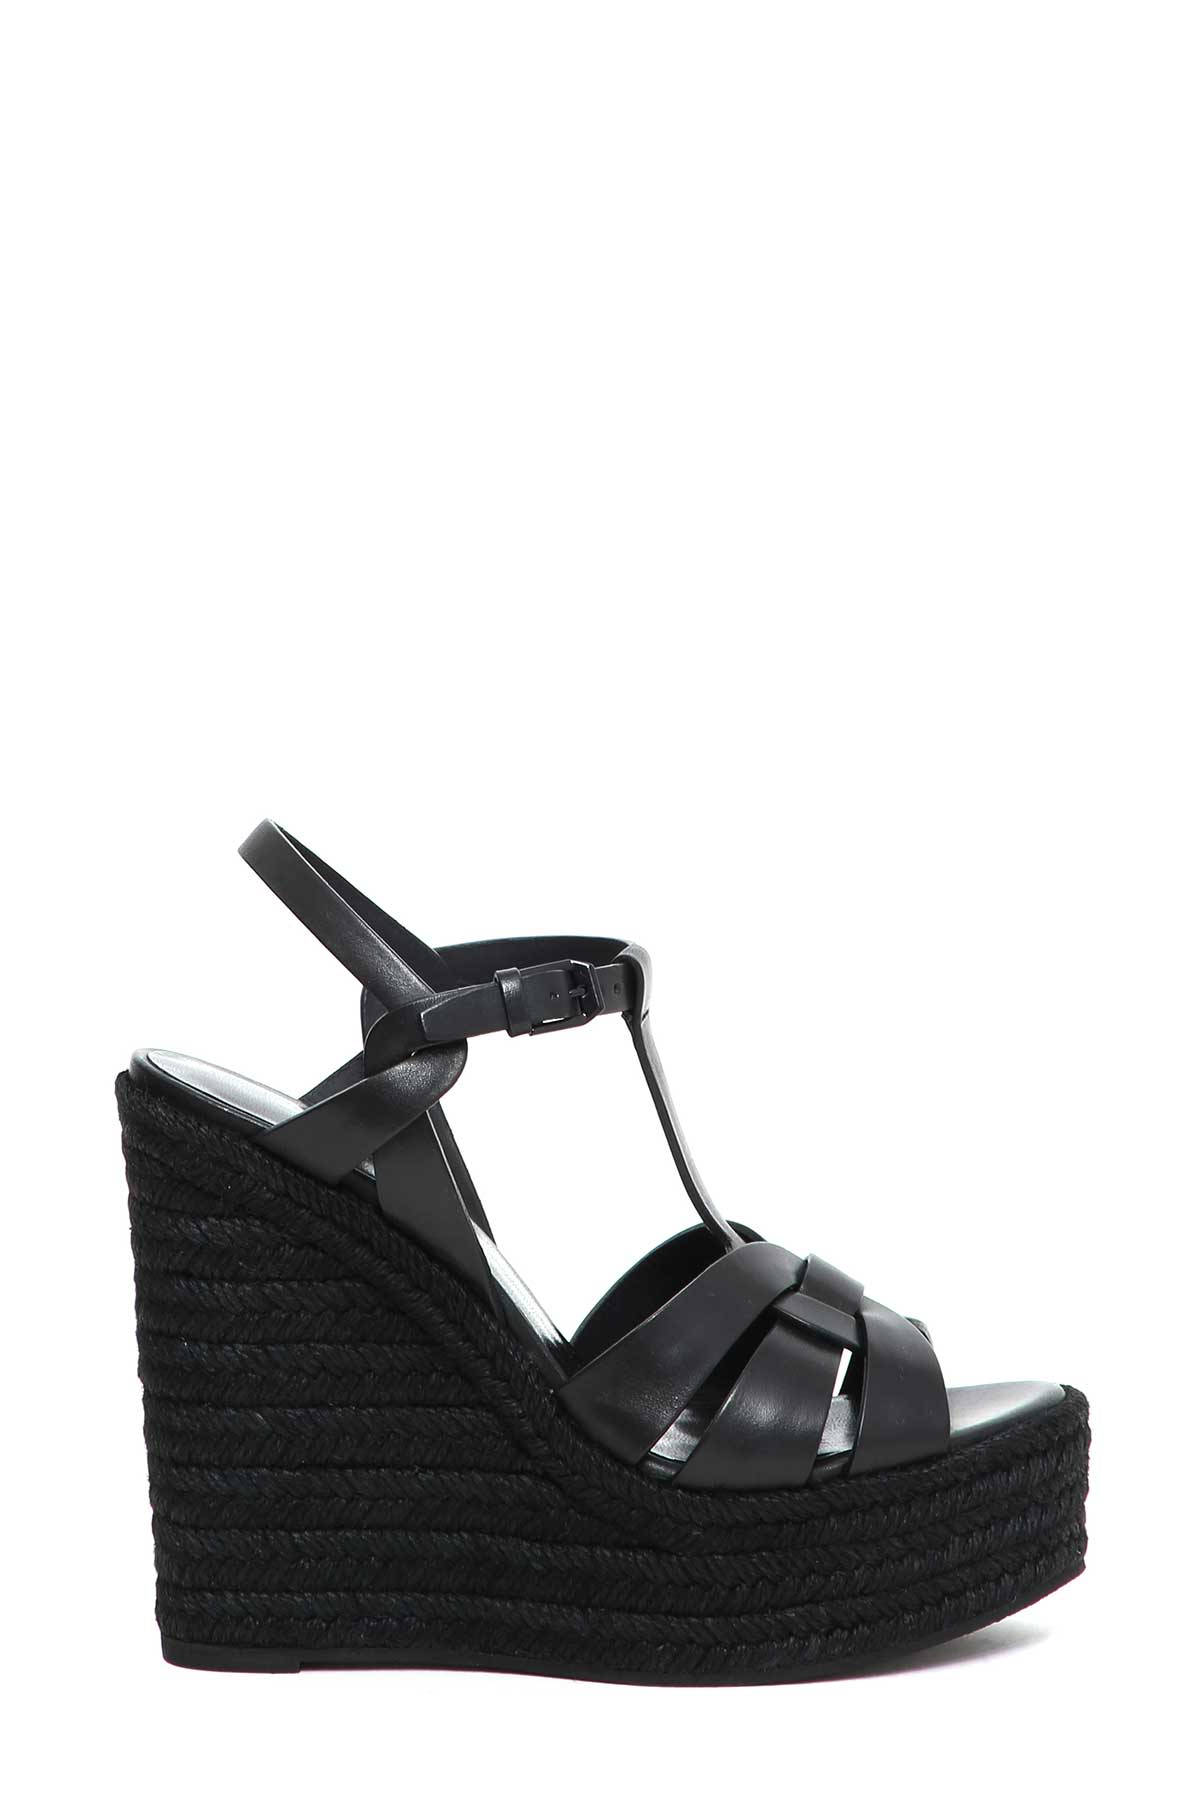 Saint Laurent Saint Laurent tribute Wedge Sandal